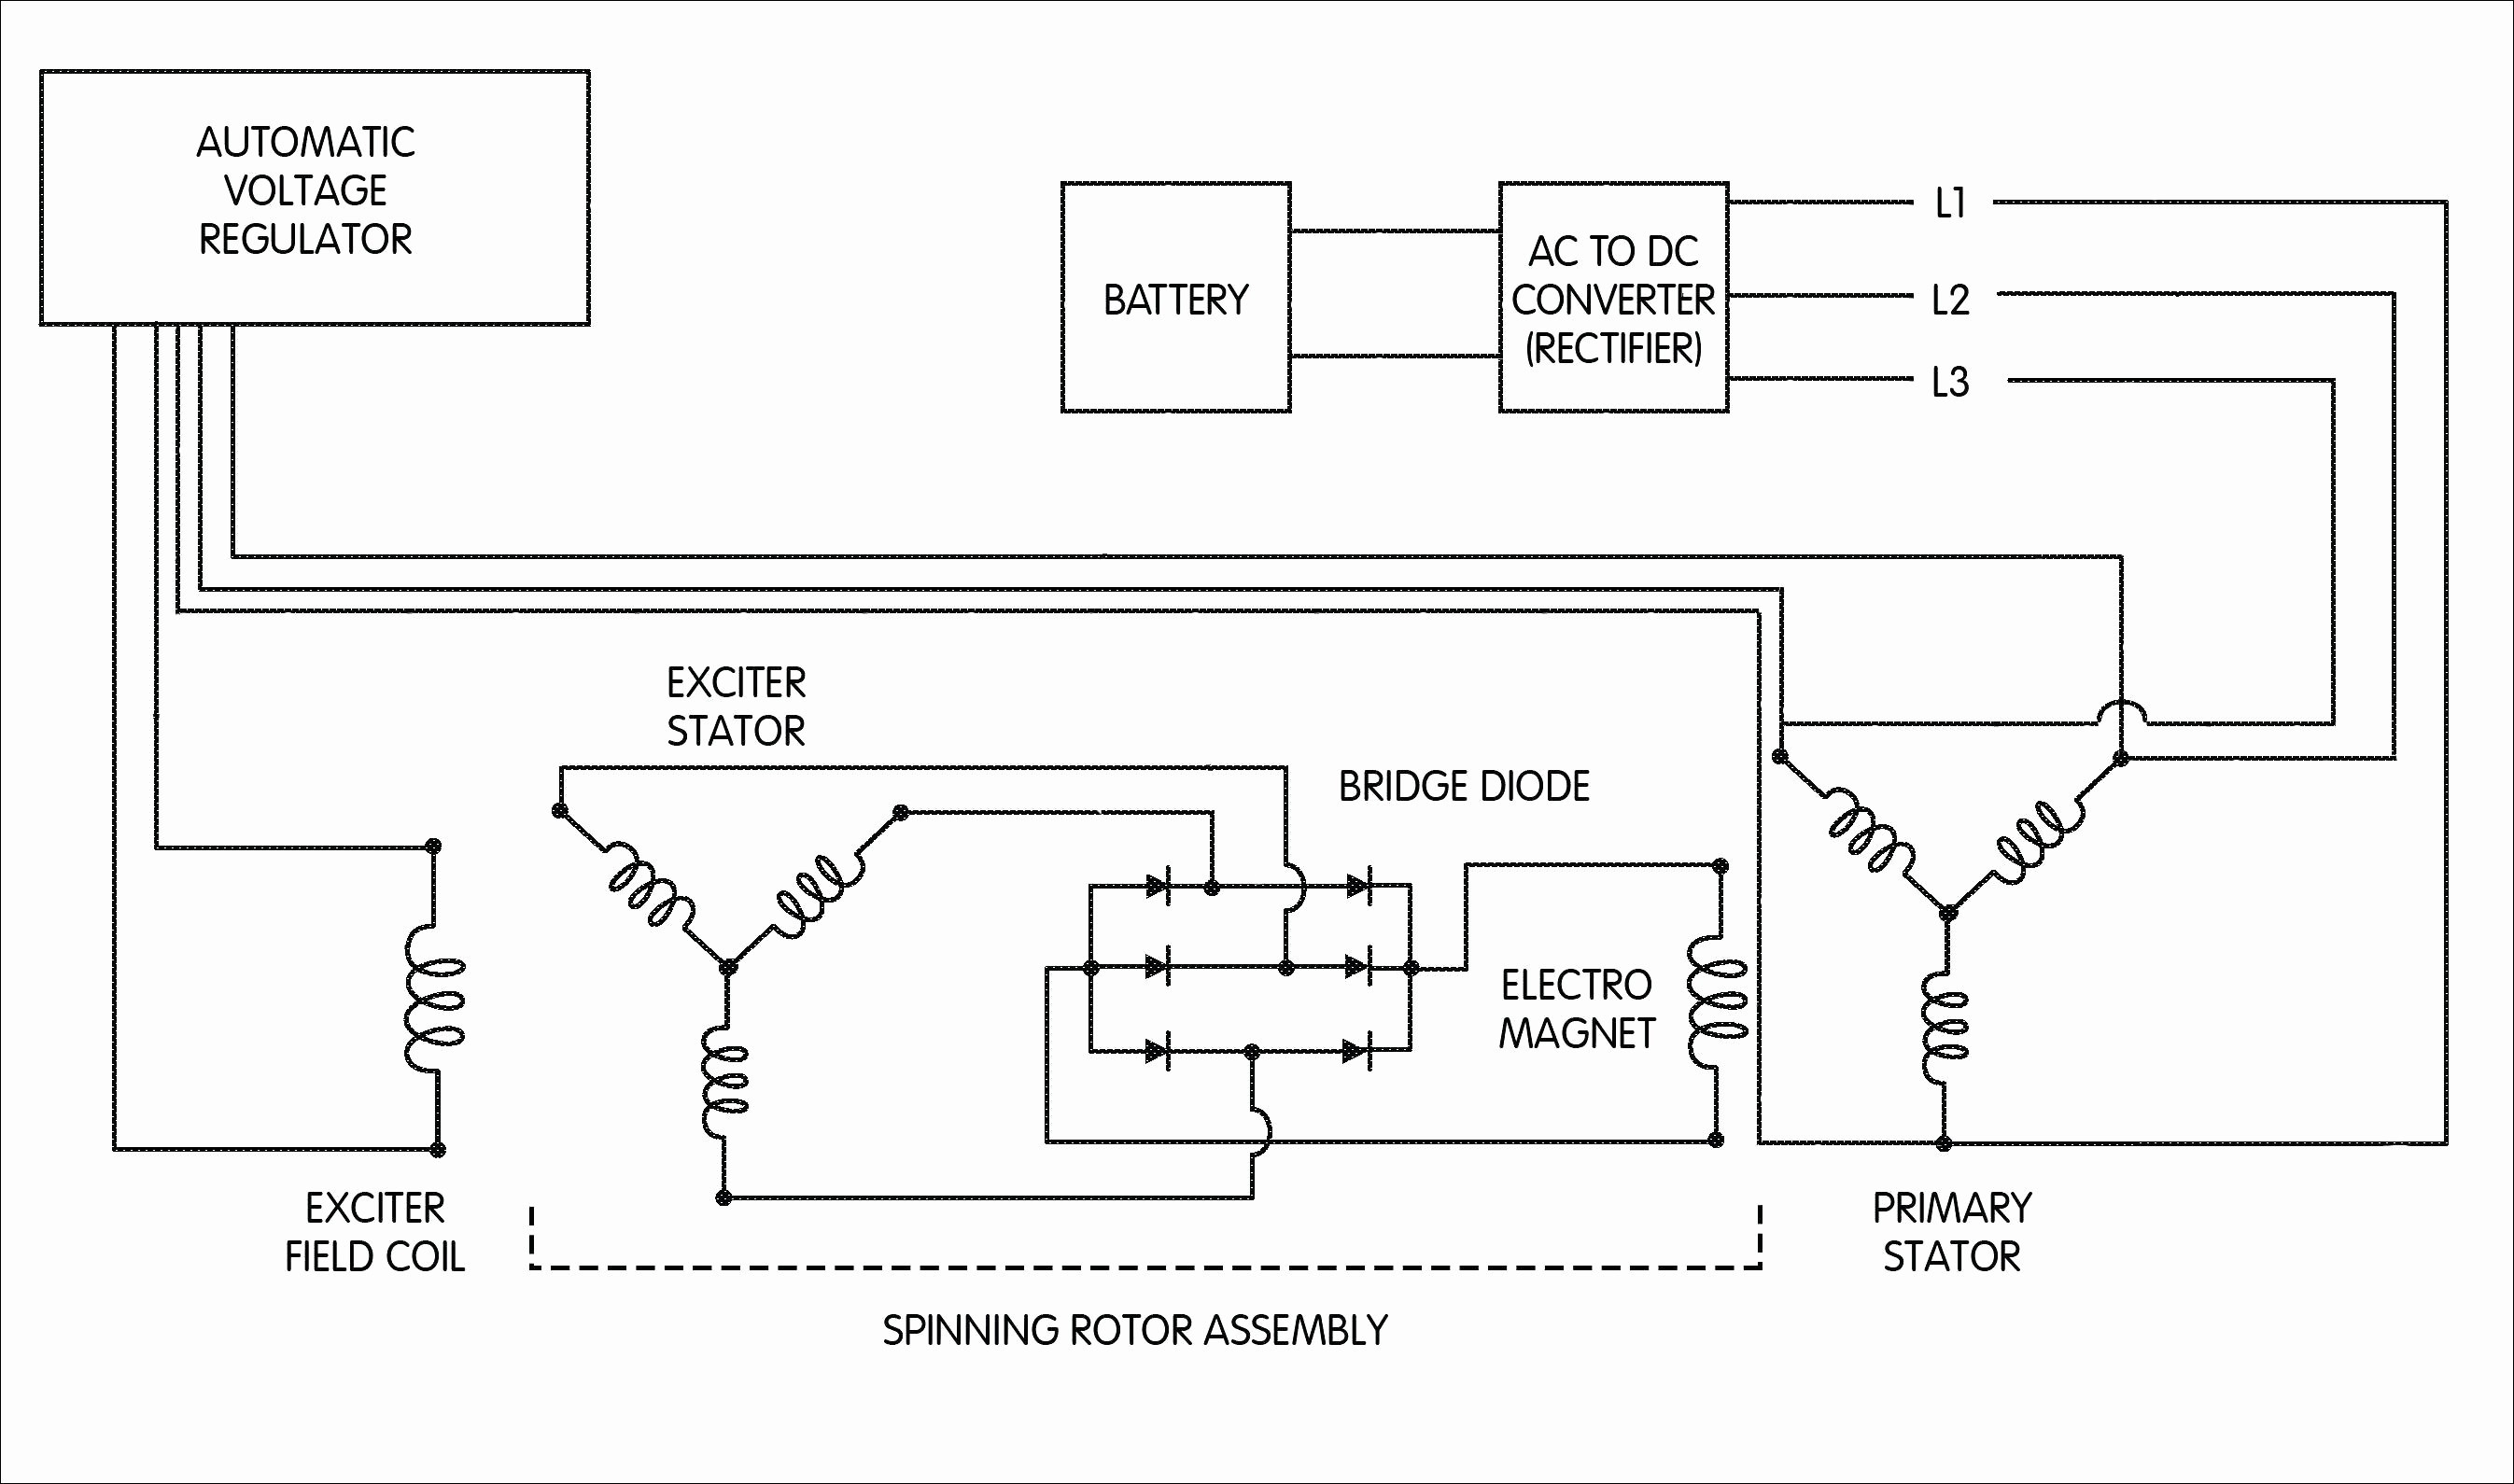 1 Wire Alternator Wiring Diagram Suzuki Samurai | Manual E-Books - Alternator Exciter Wiring Diagram